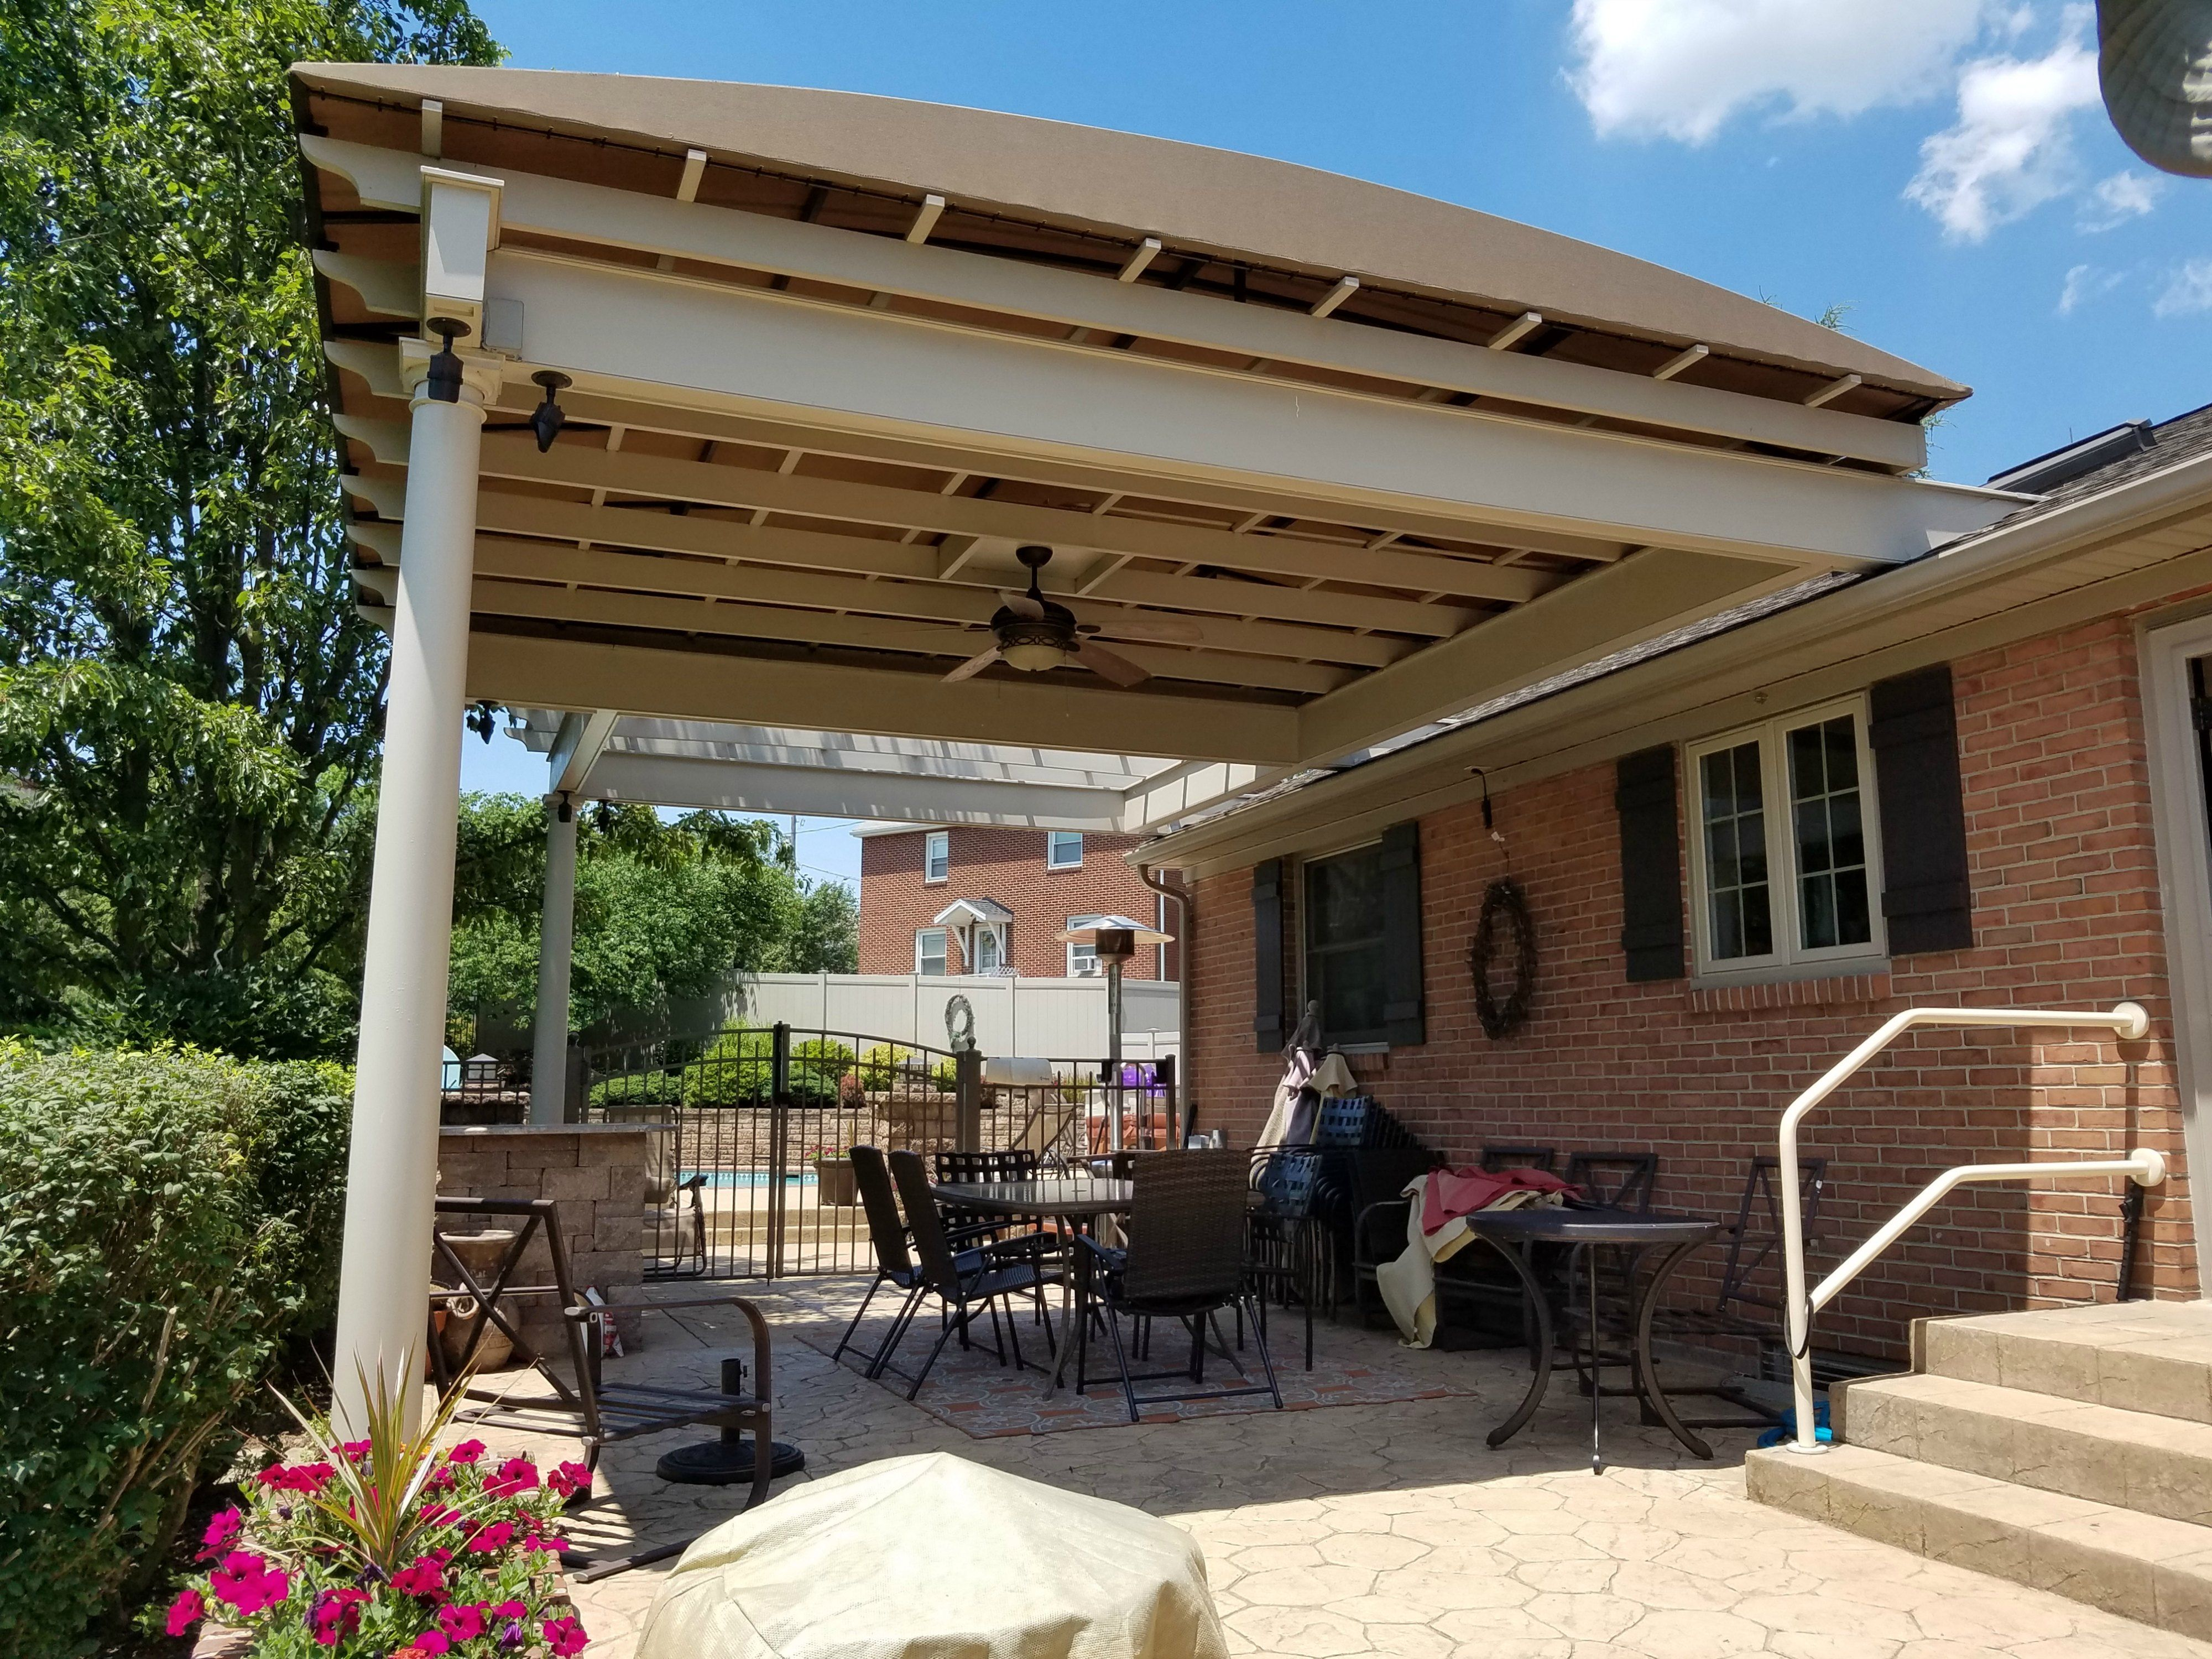 Pergolas provide a cozy feel but are lacking when it es to